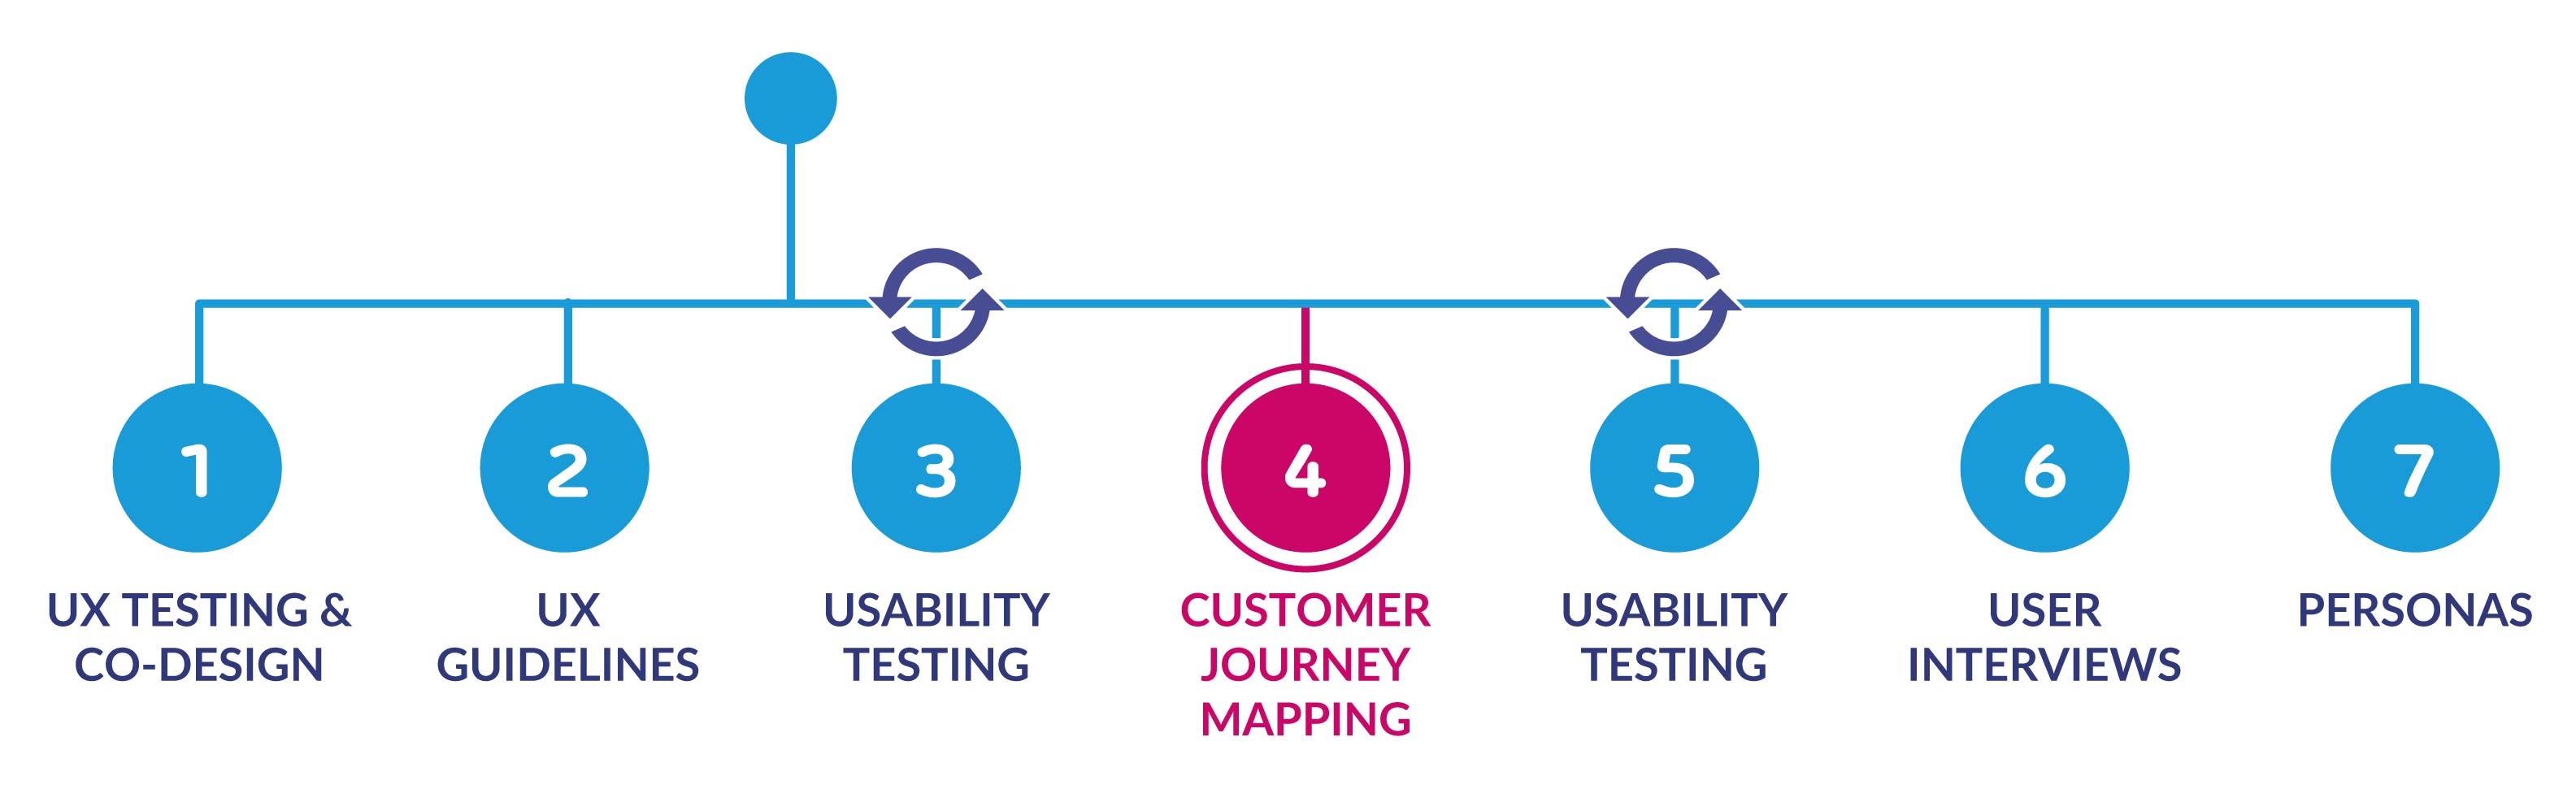 process diagram showing customer journey mapping phase